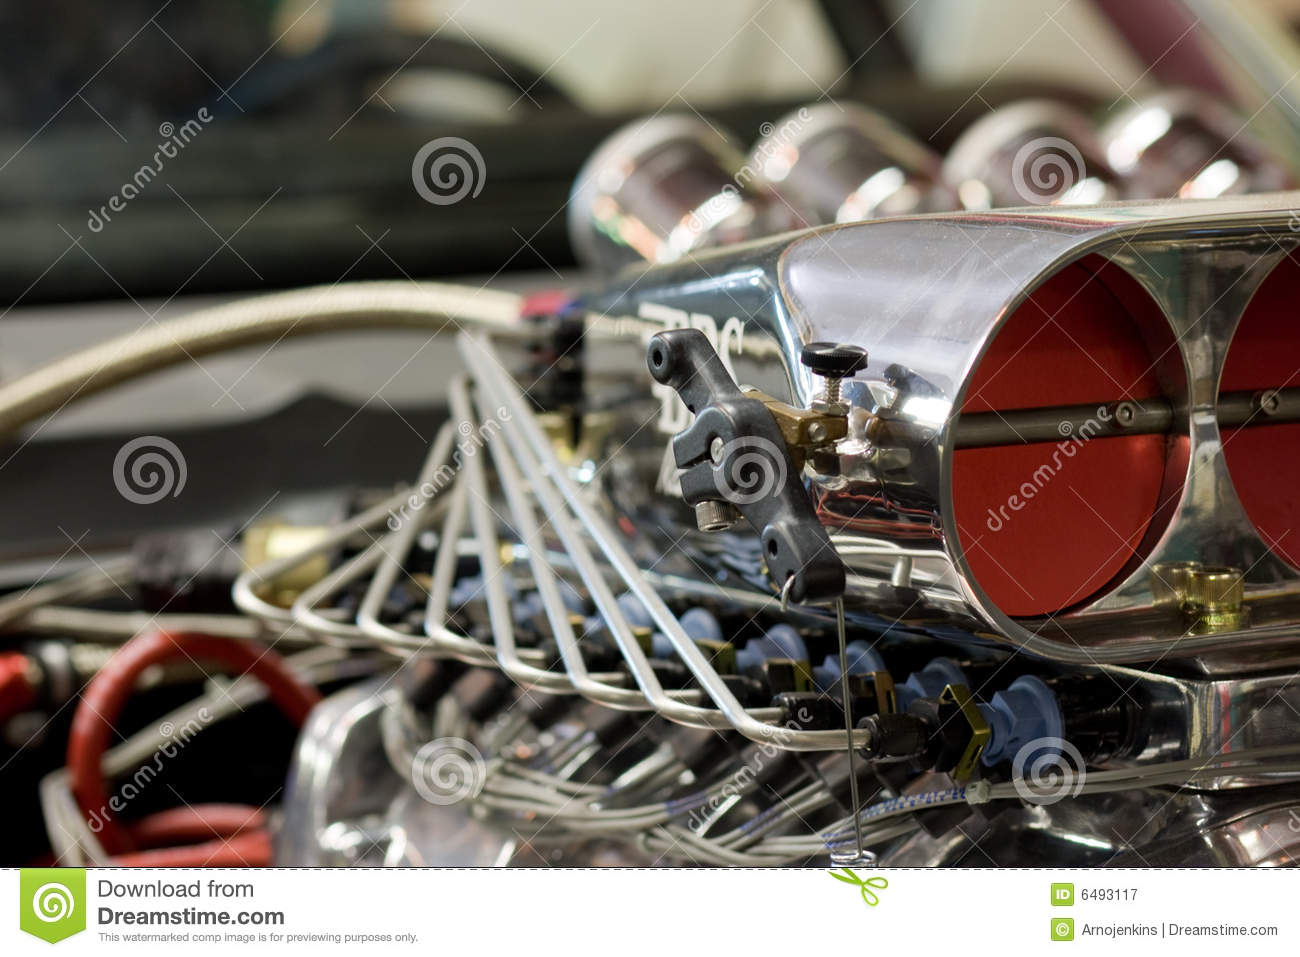 Car Engine Blower : Car engine blower royalty free stock photography image